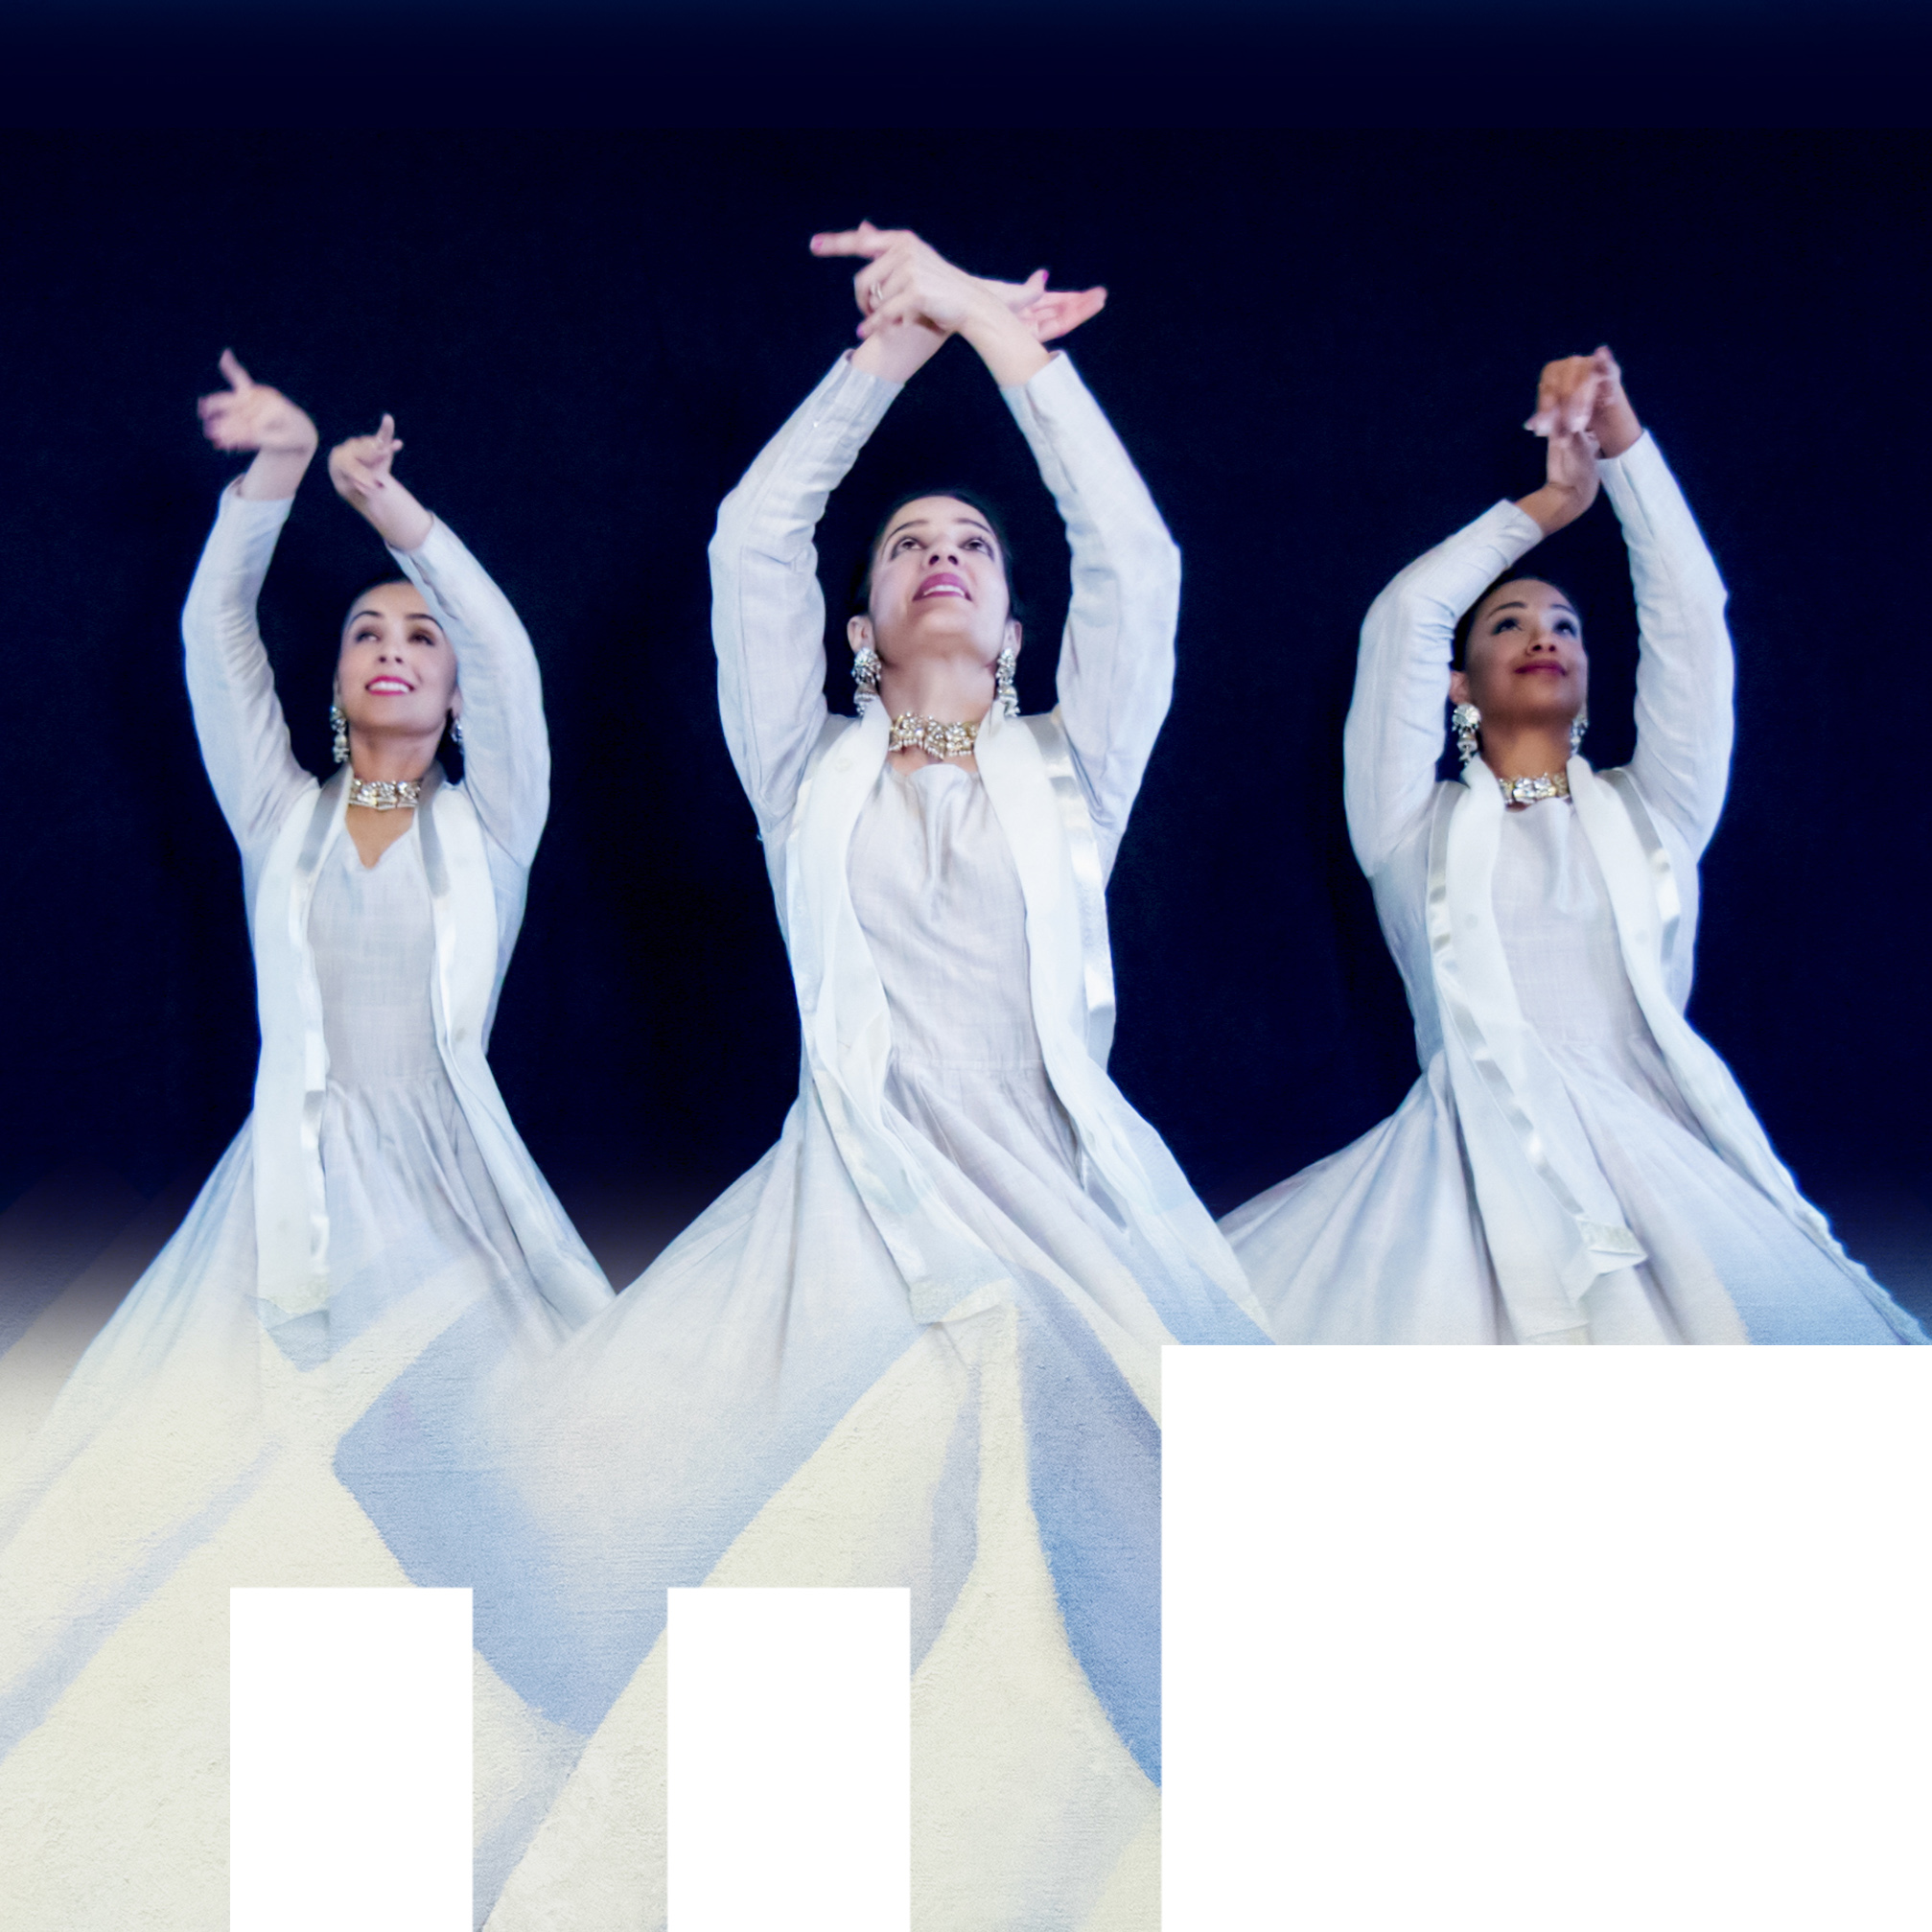 3 dancers in white robes with arms raised.